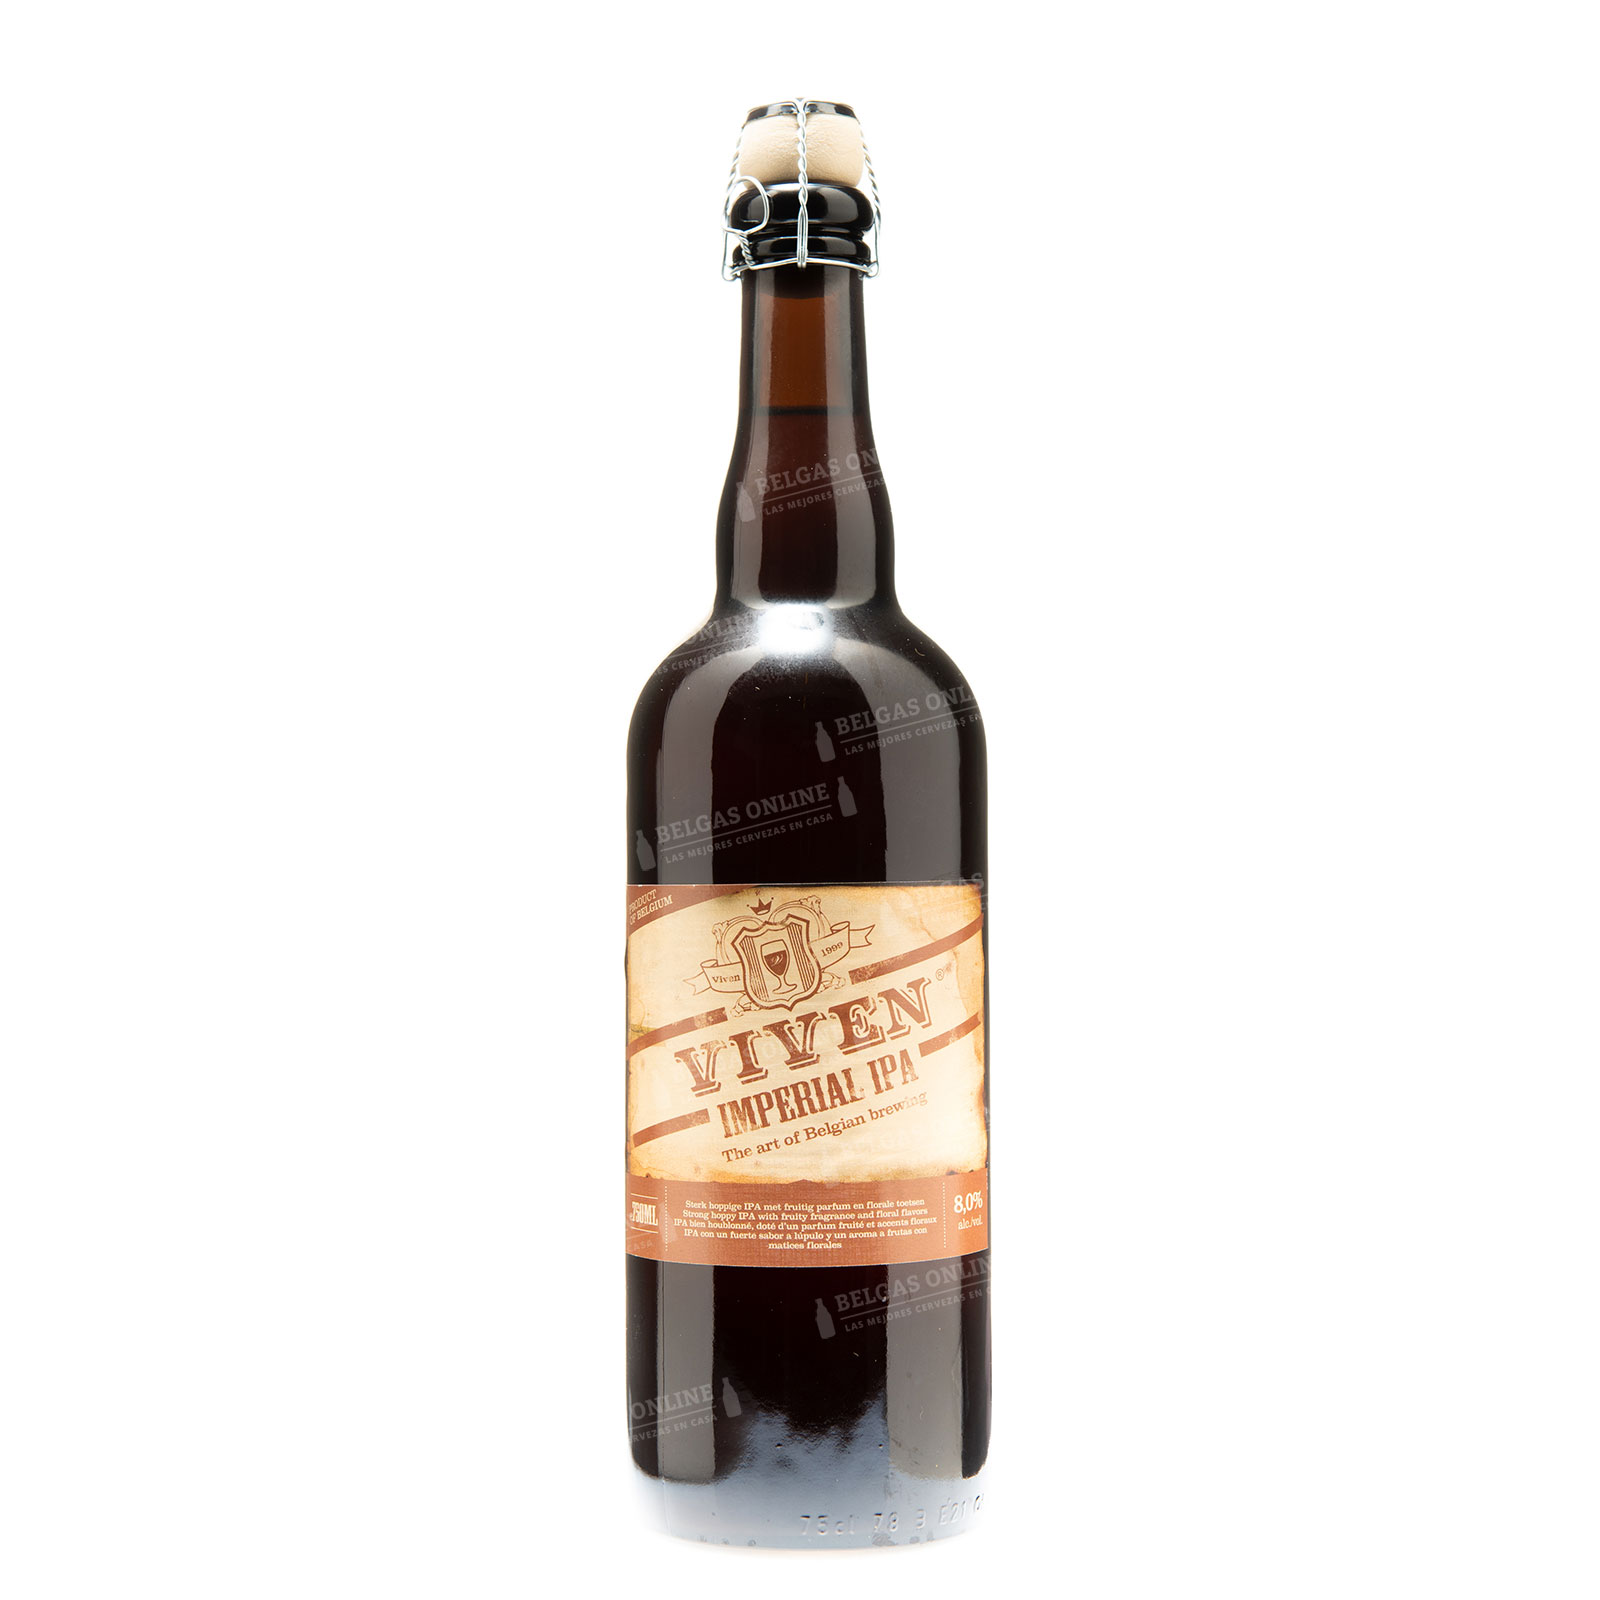 Viven Imperial IPA 75cl